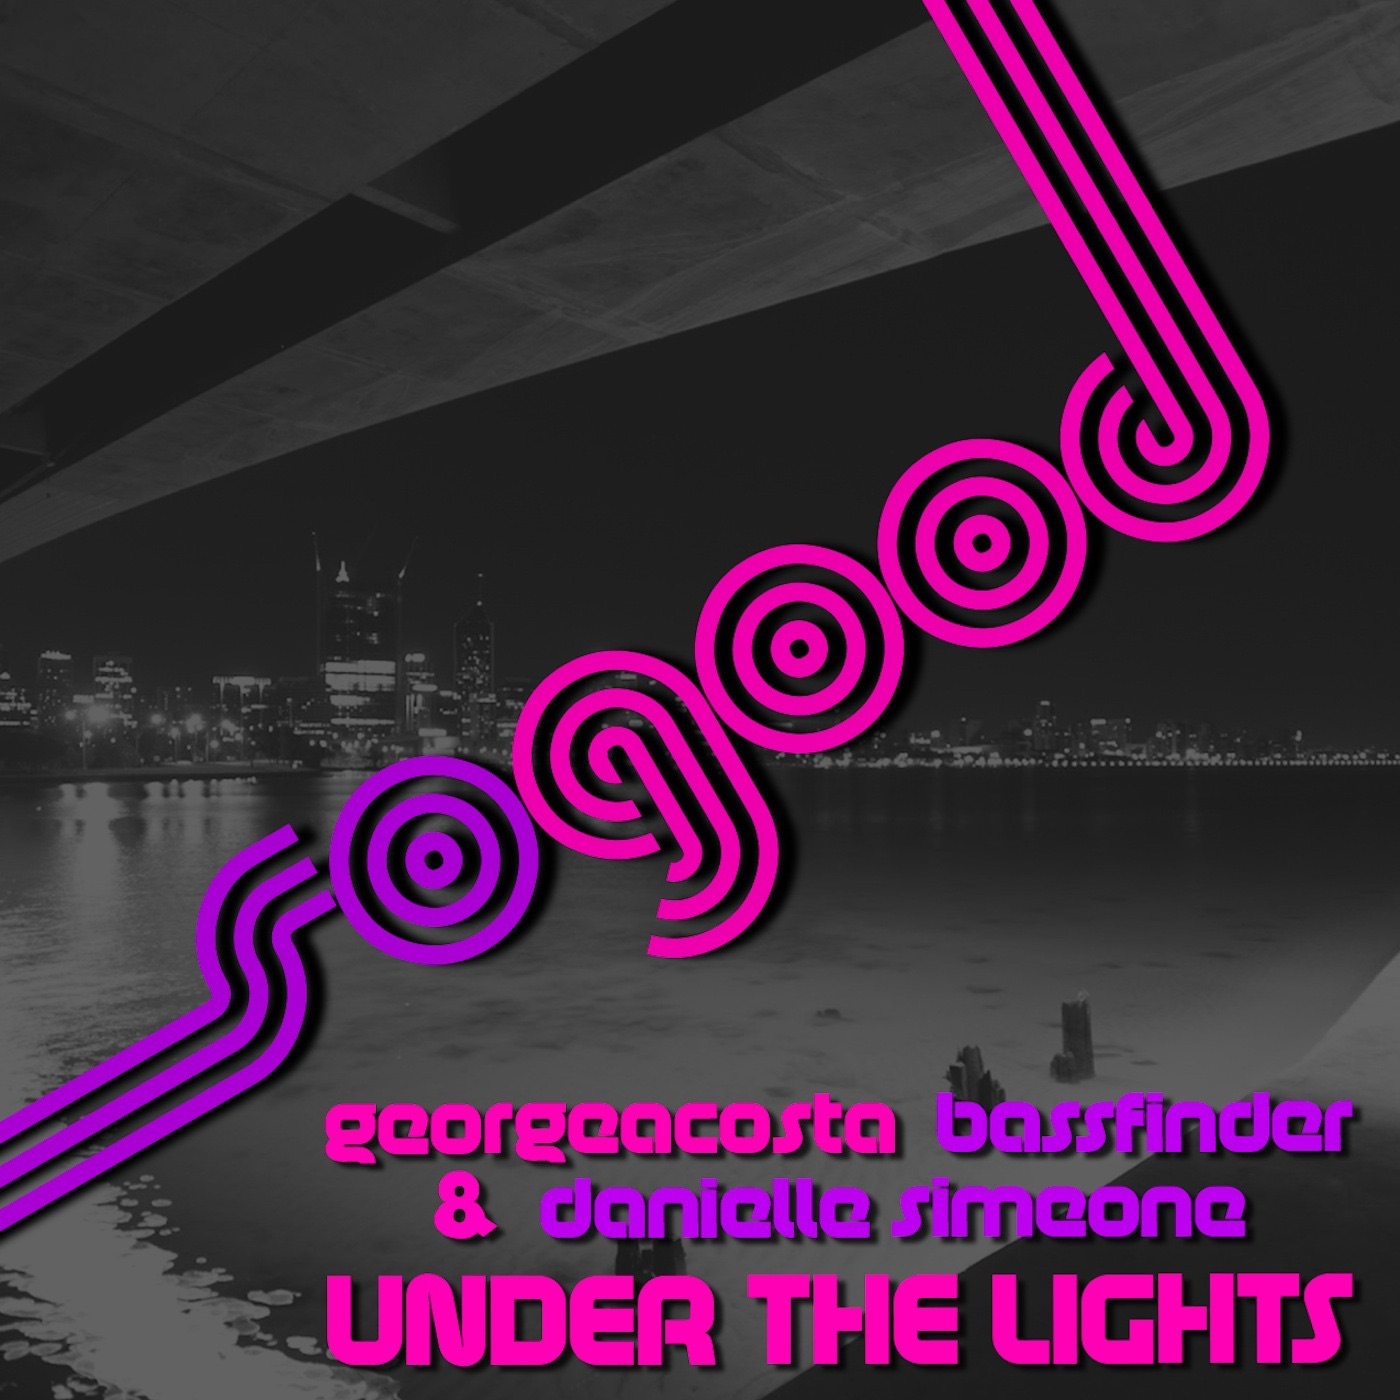 Under the Lights (feat. Danielle Simeone) - EP